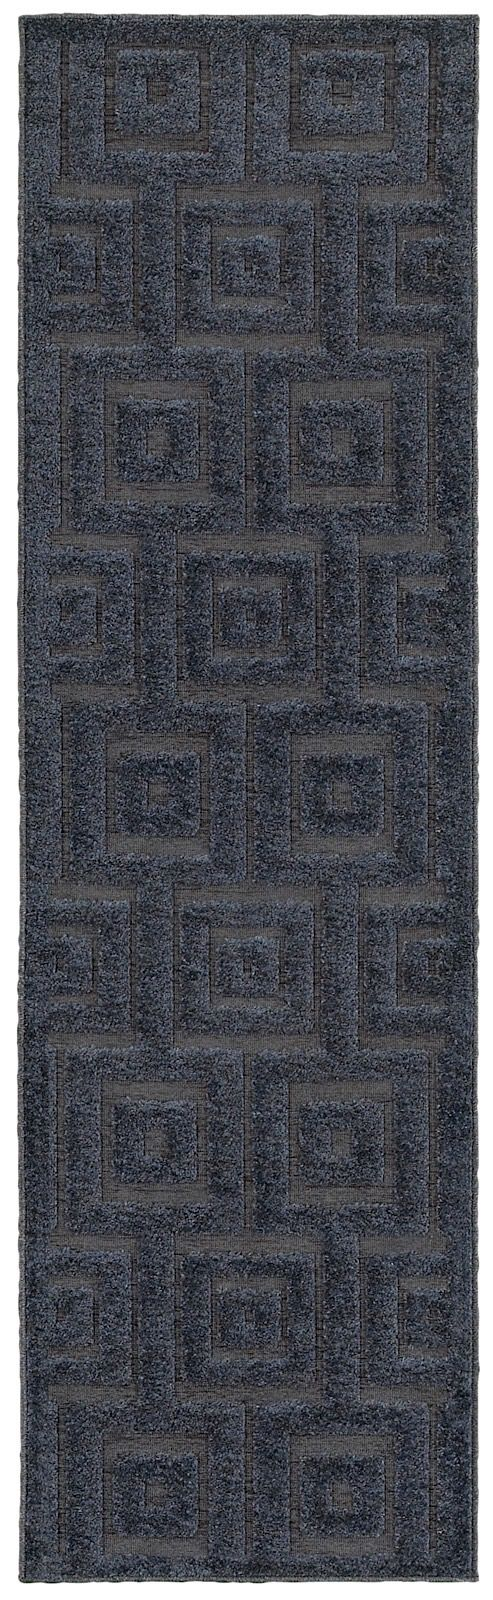 oriental weavers verona country & floral area rug collection